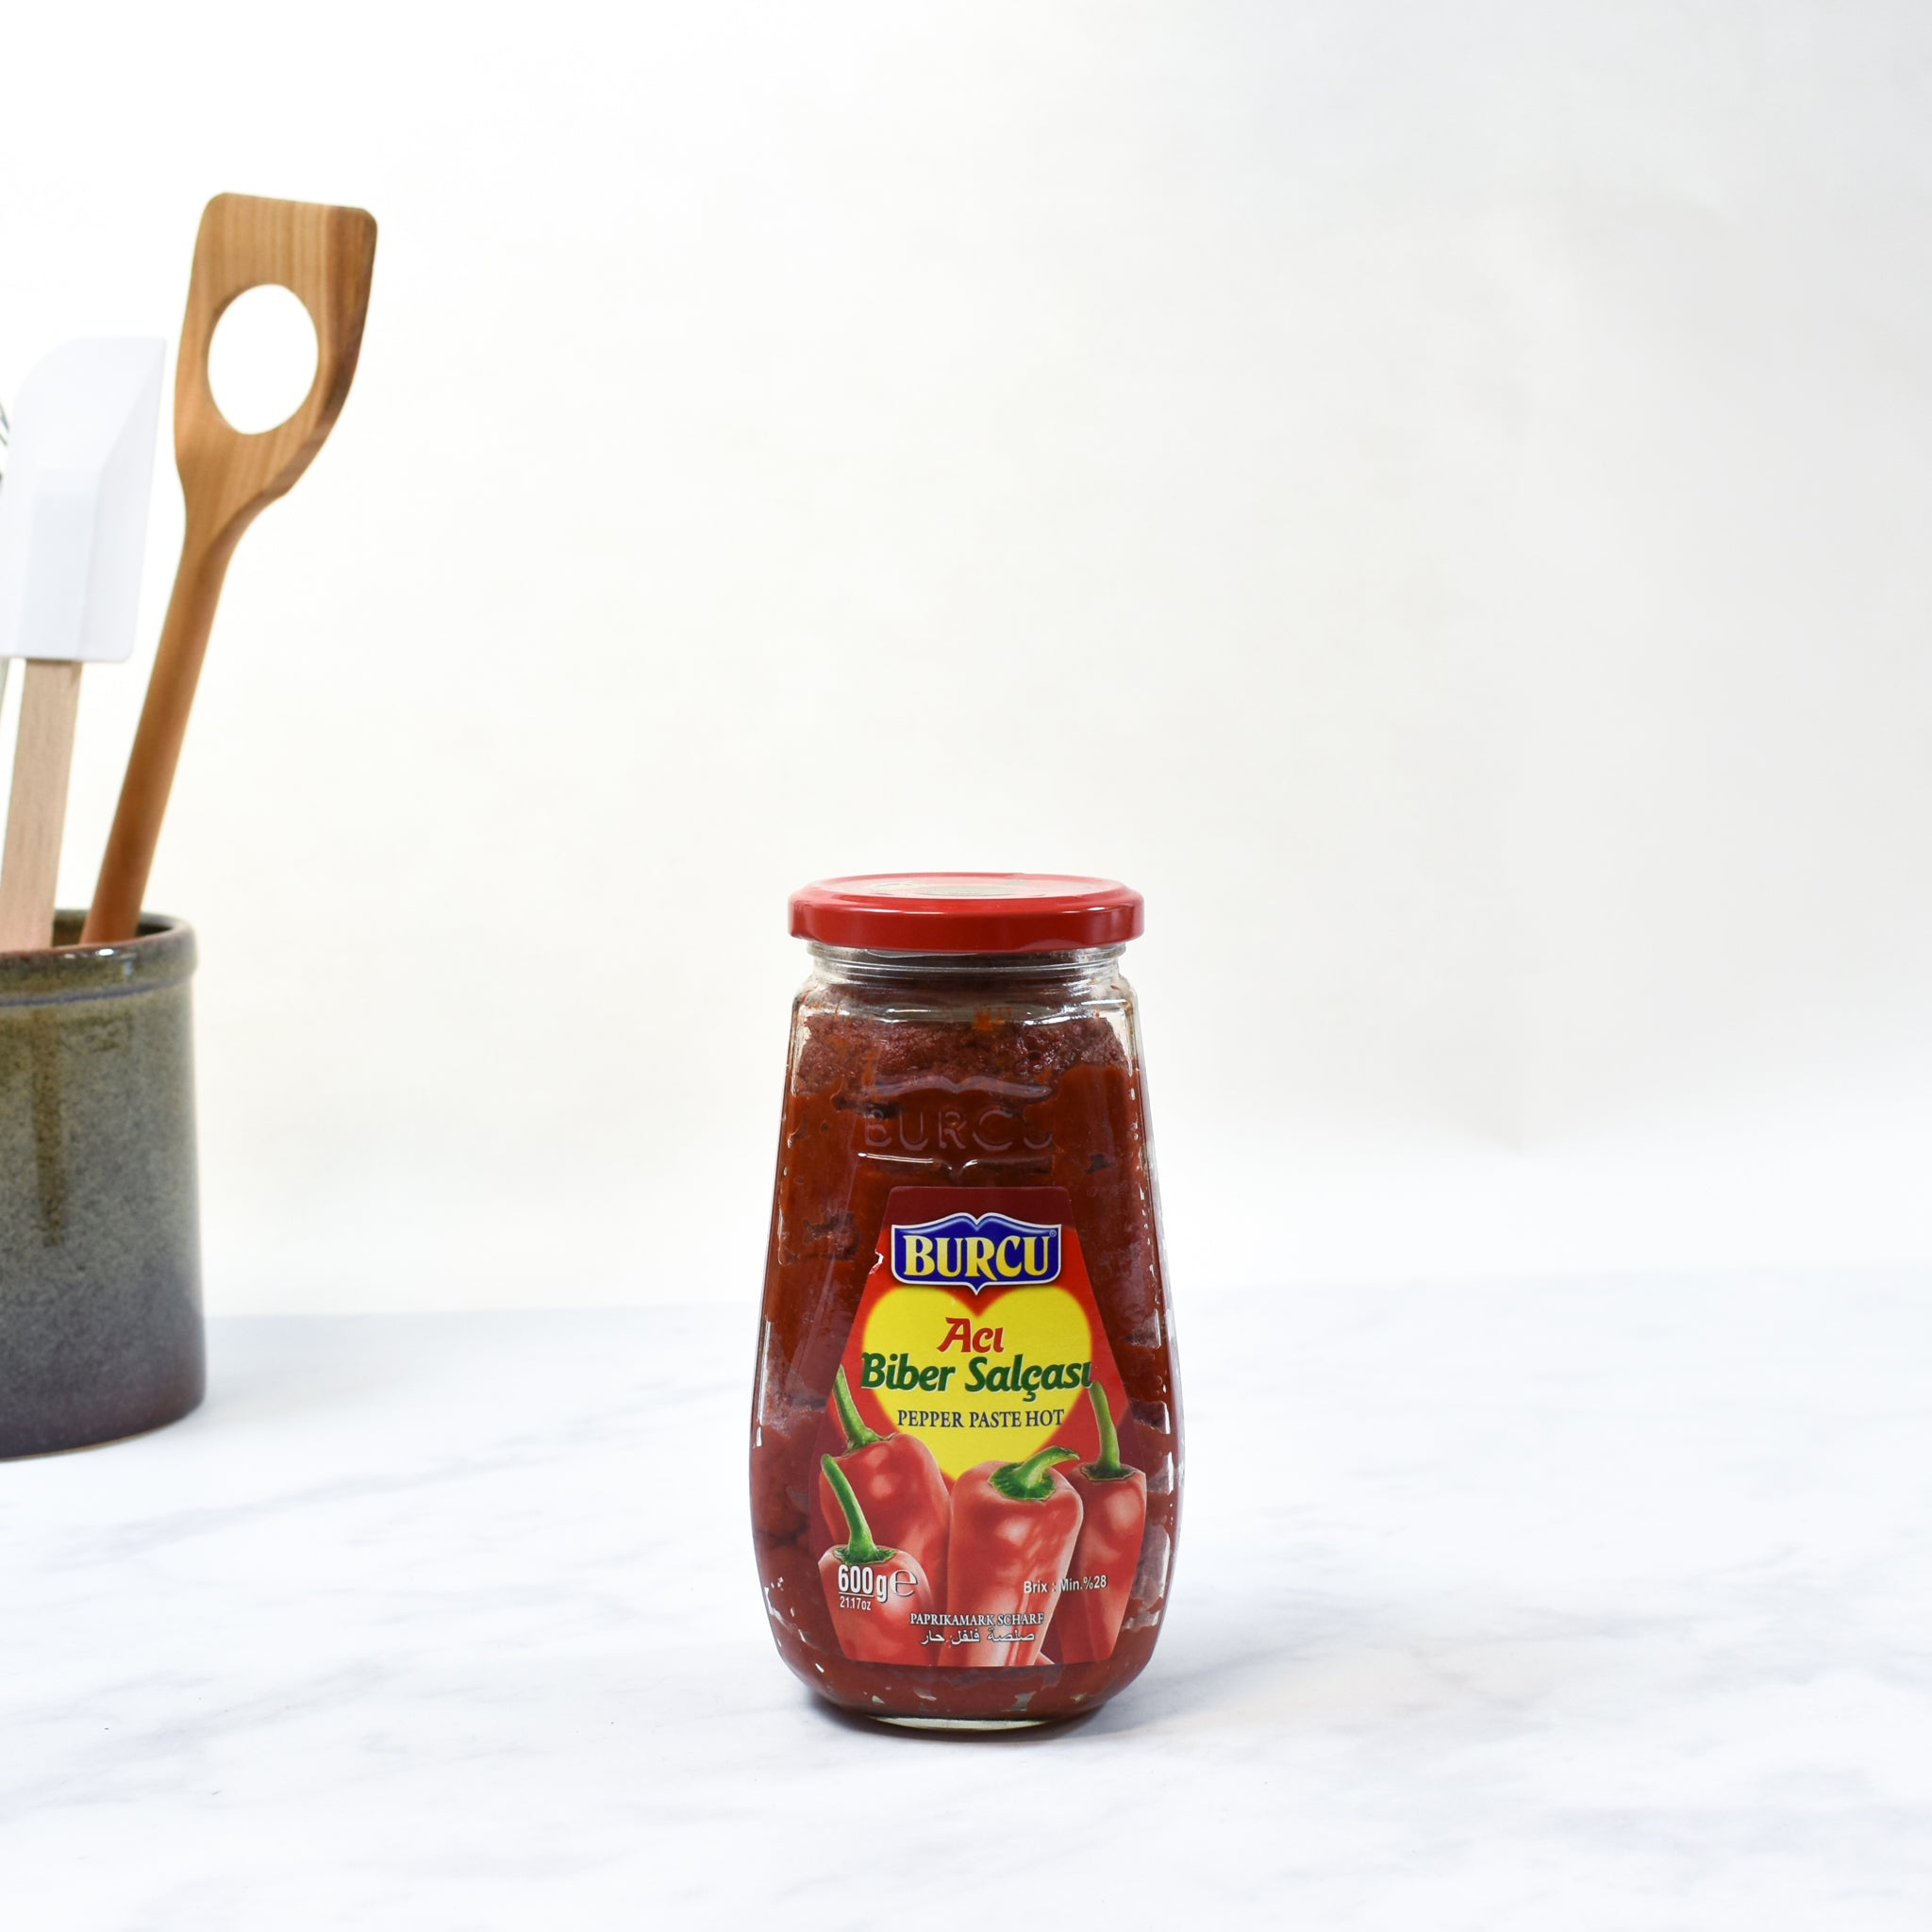 Turkish Hot Pepper Paste (Biber Salcasi)